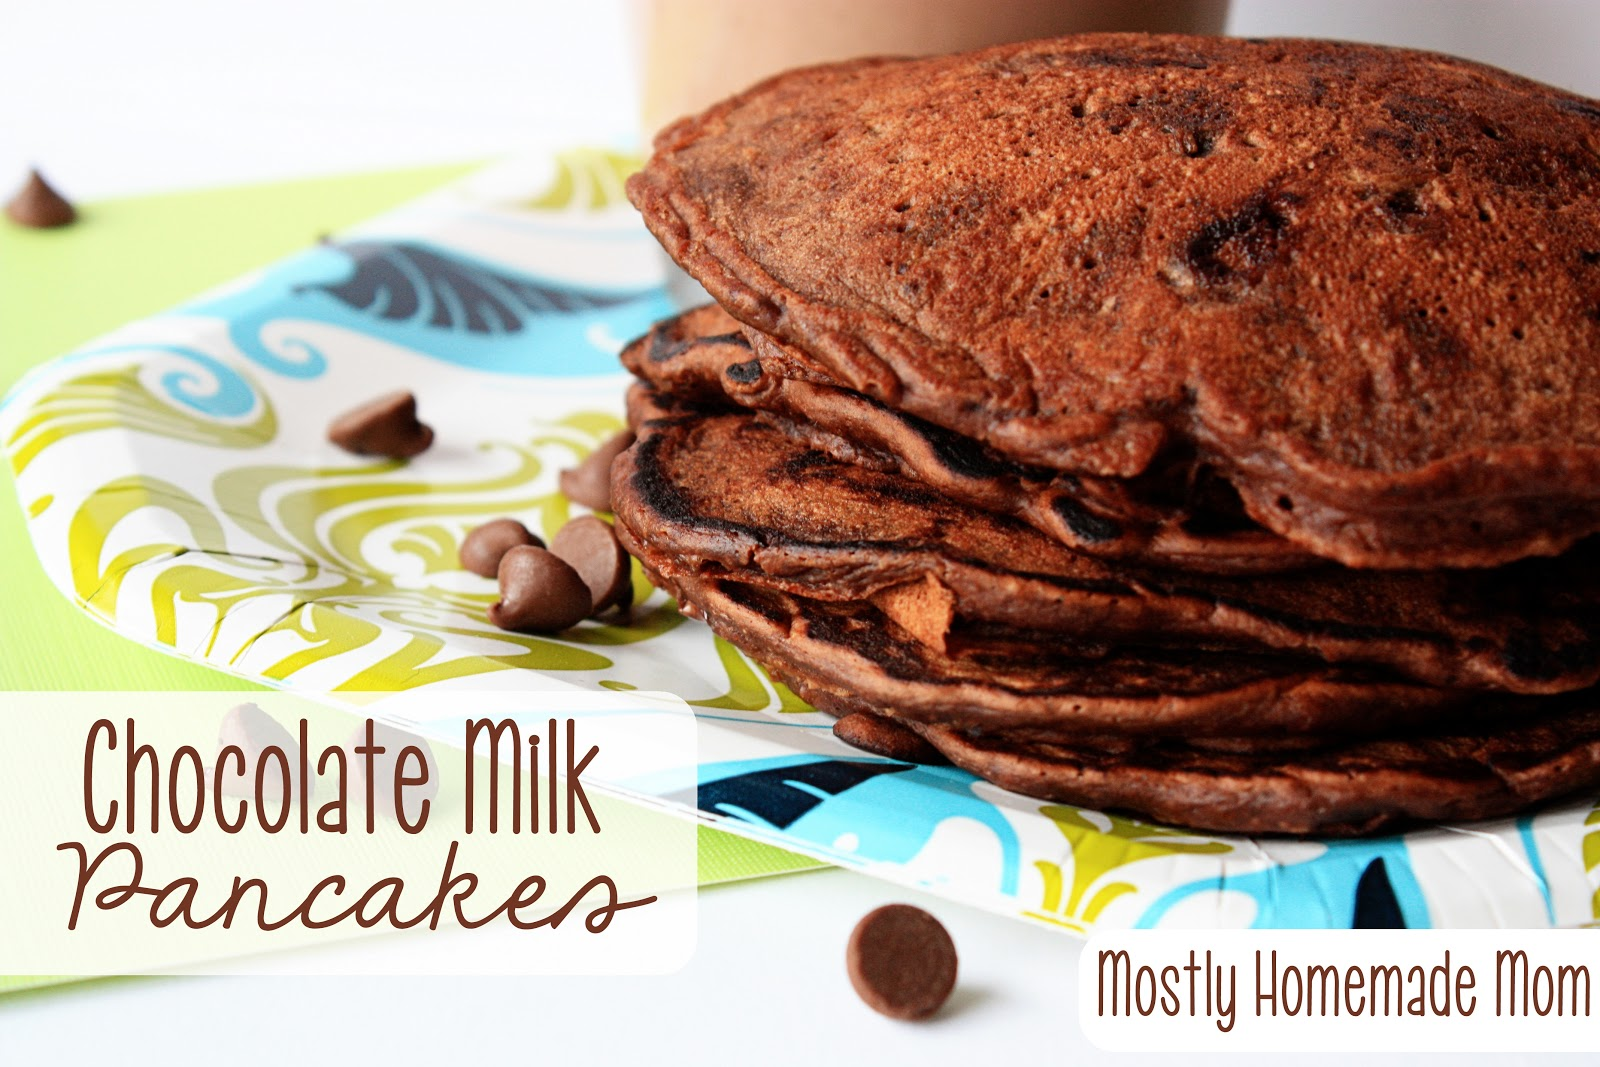 Chocolate milk pancakes mostly homemade mom ccuart Images